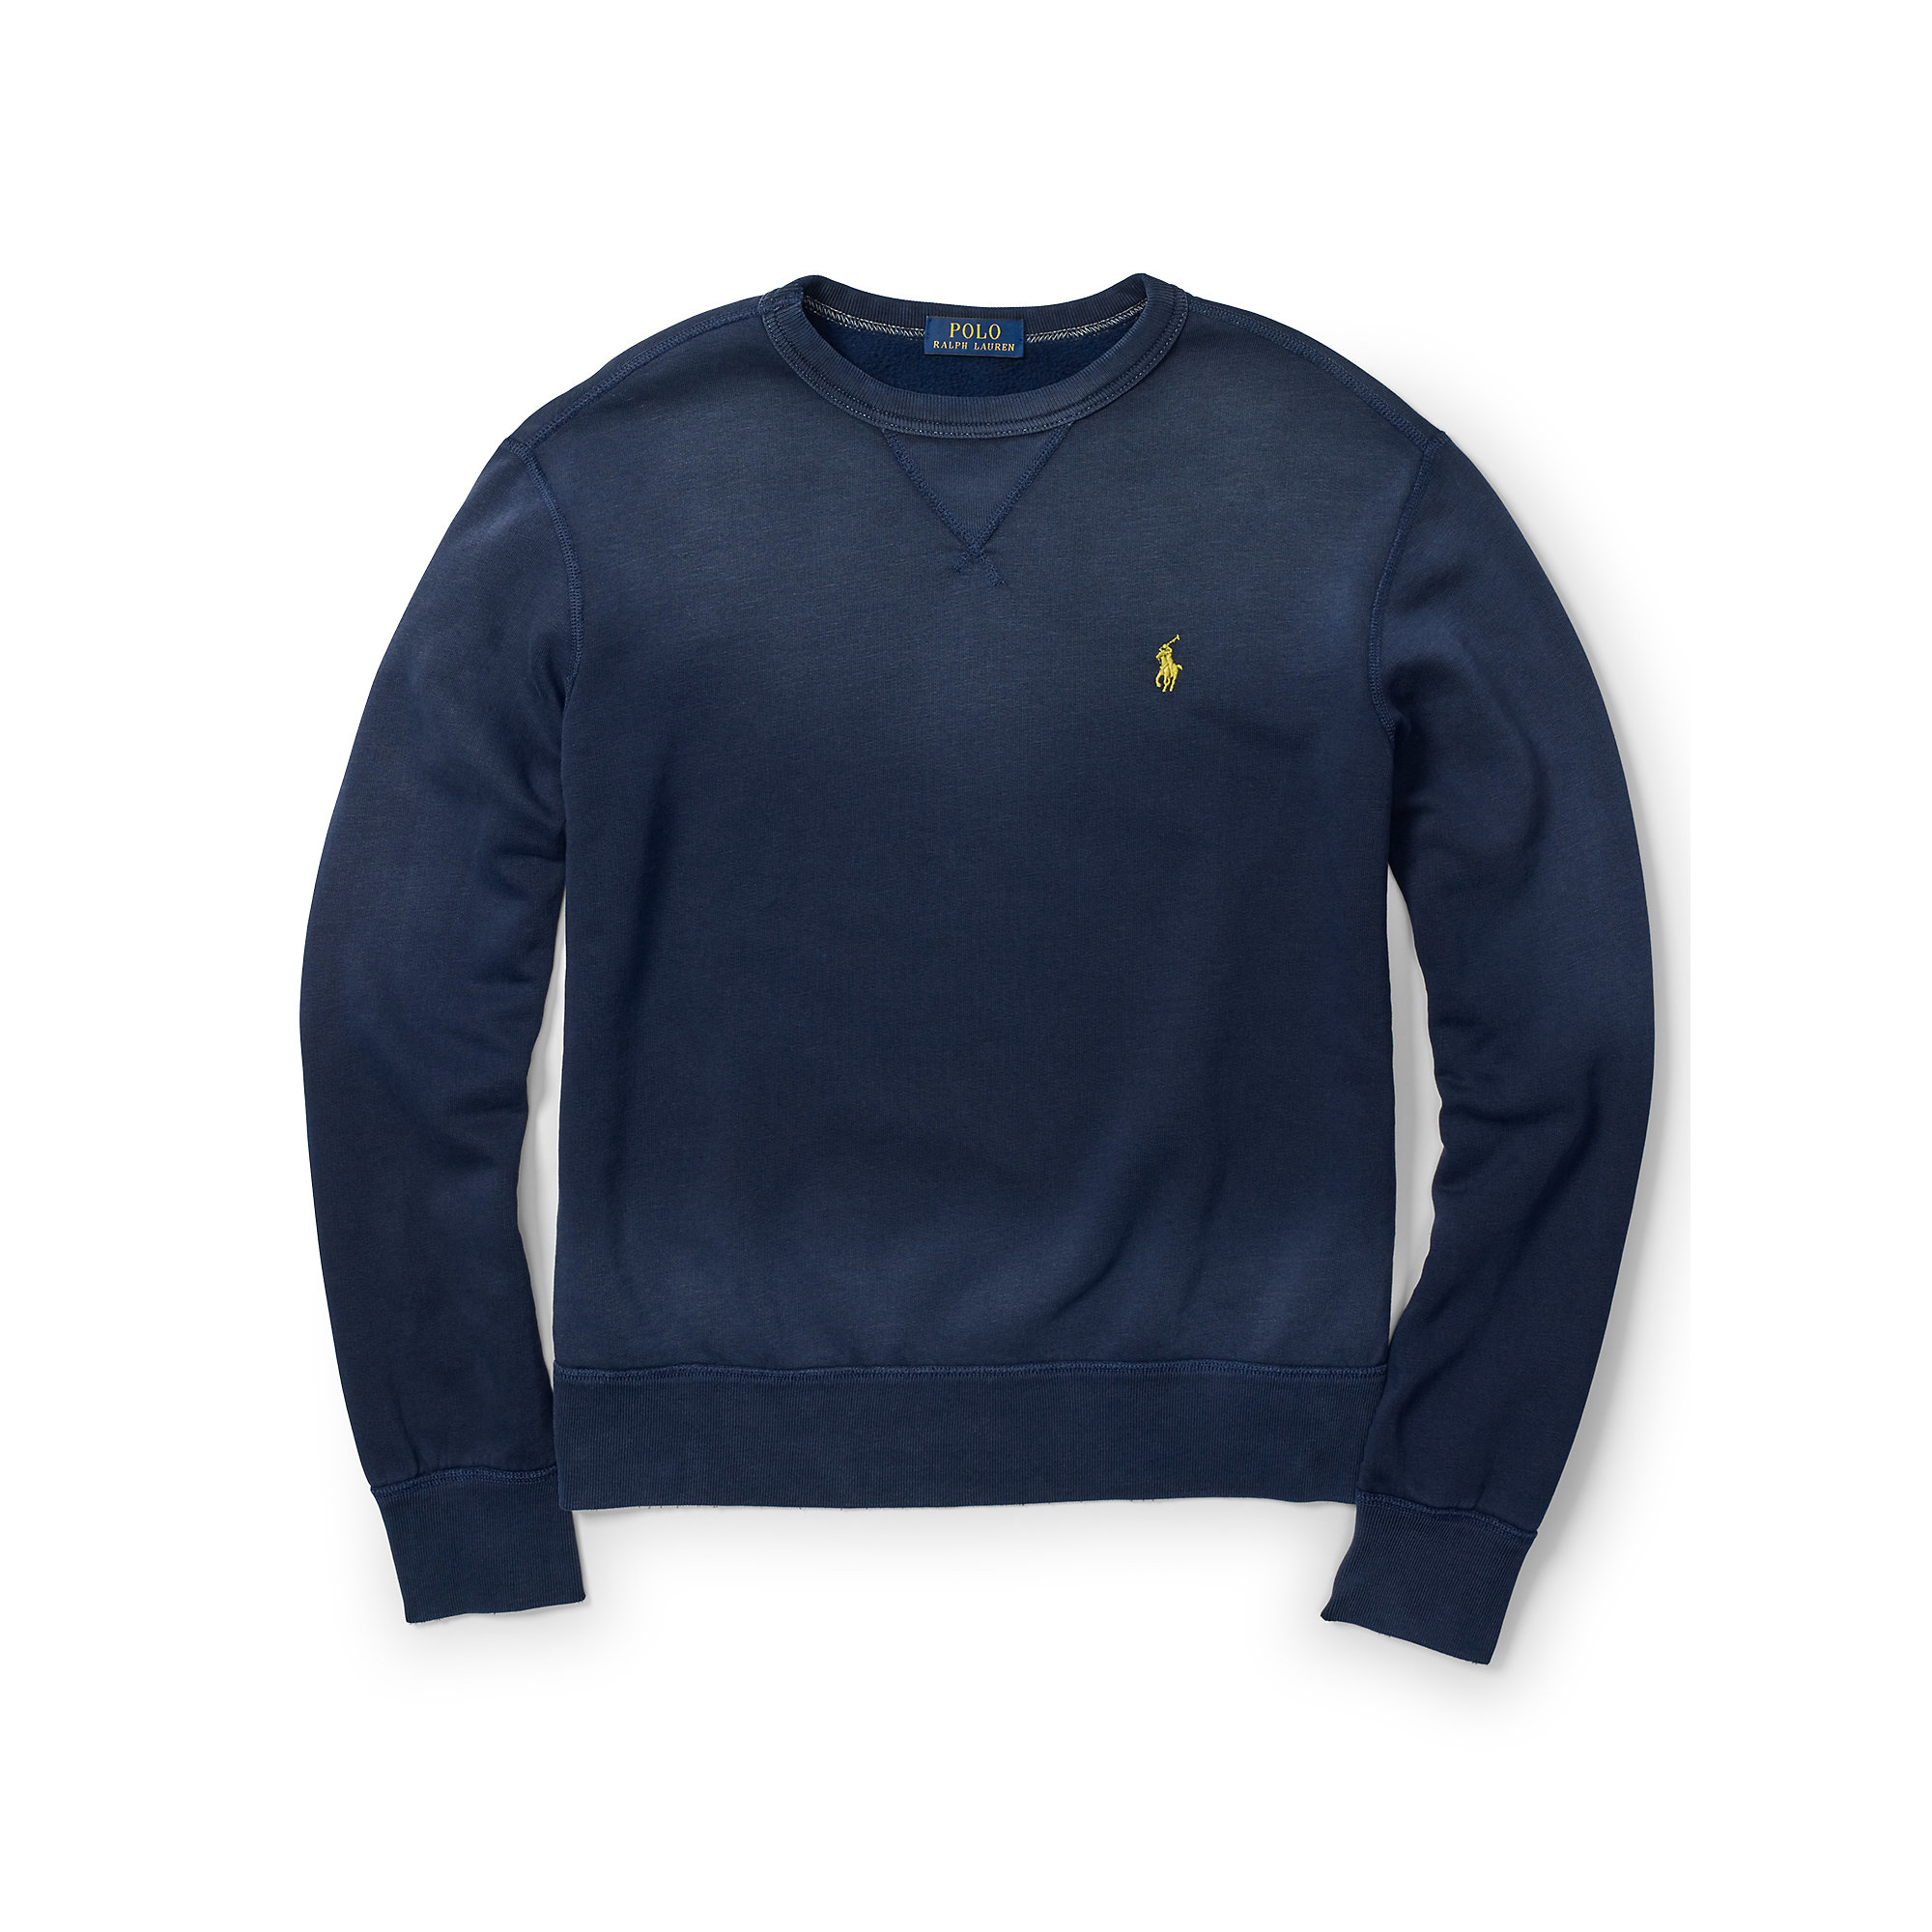 polo ralph lauren cotton blend fleece sweatshirt in blue. Black Bedroom Furniture Sets. Home Design Ideas